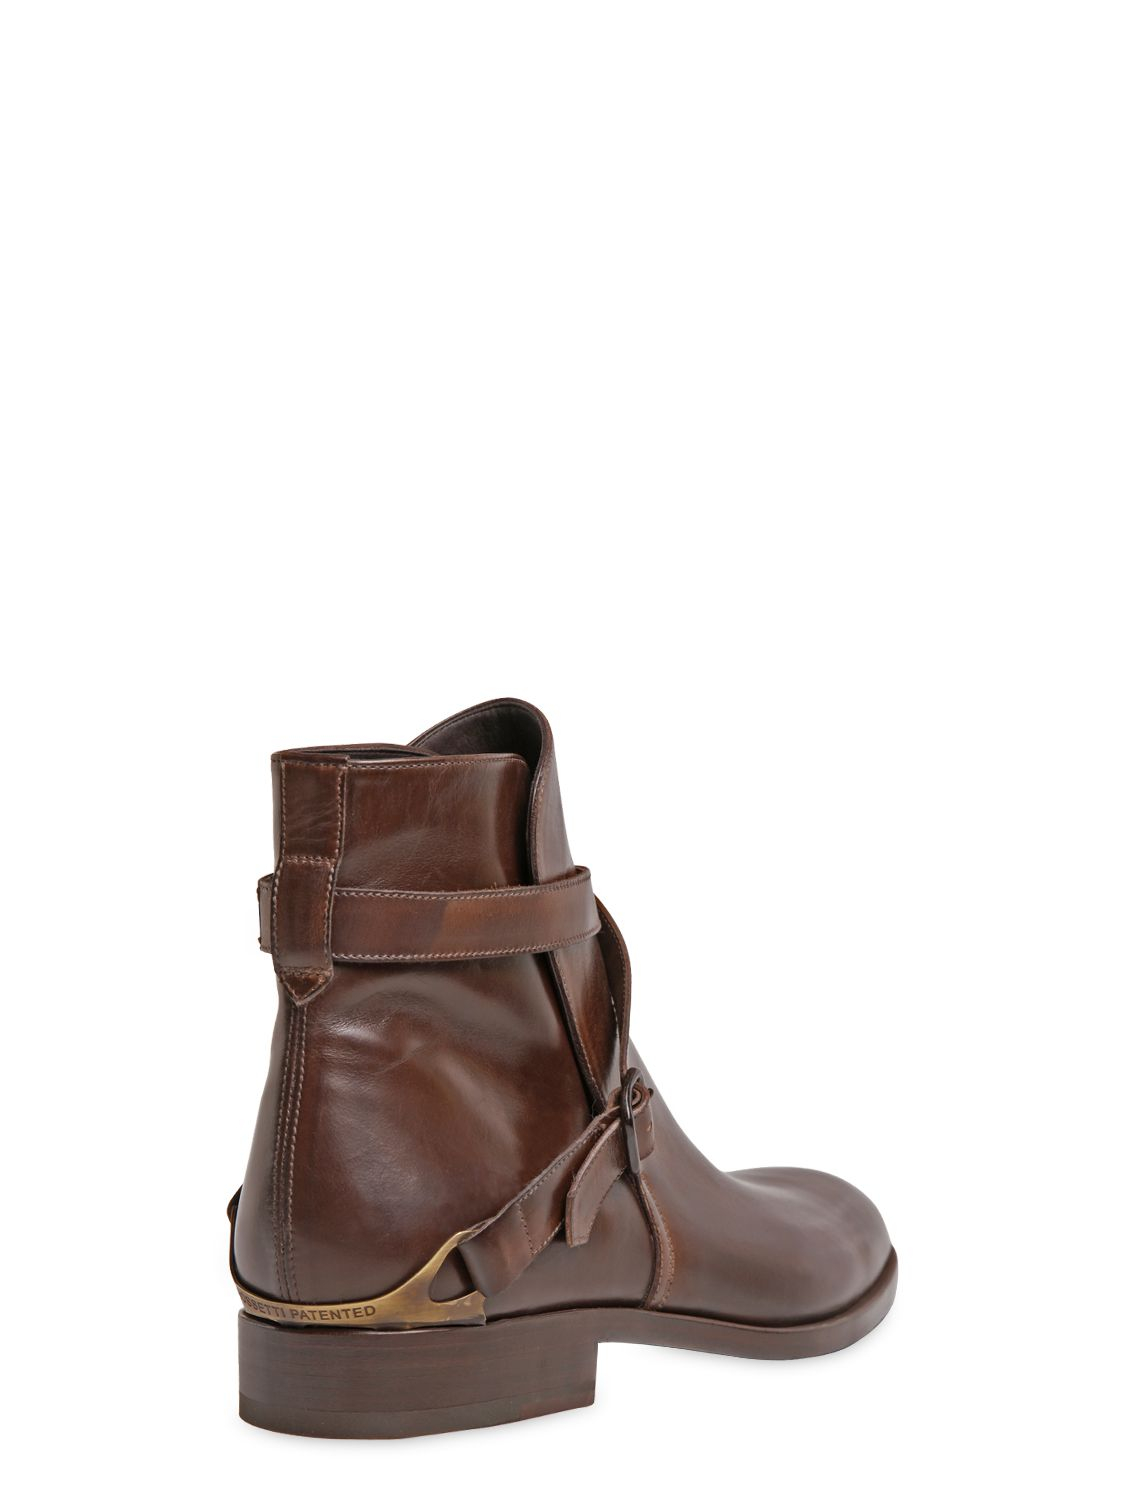 Lyst Fratelli Rossetti Hand Painted Leather Ankle Boots